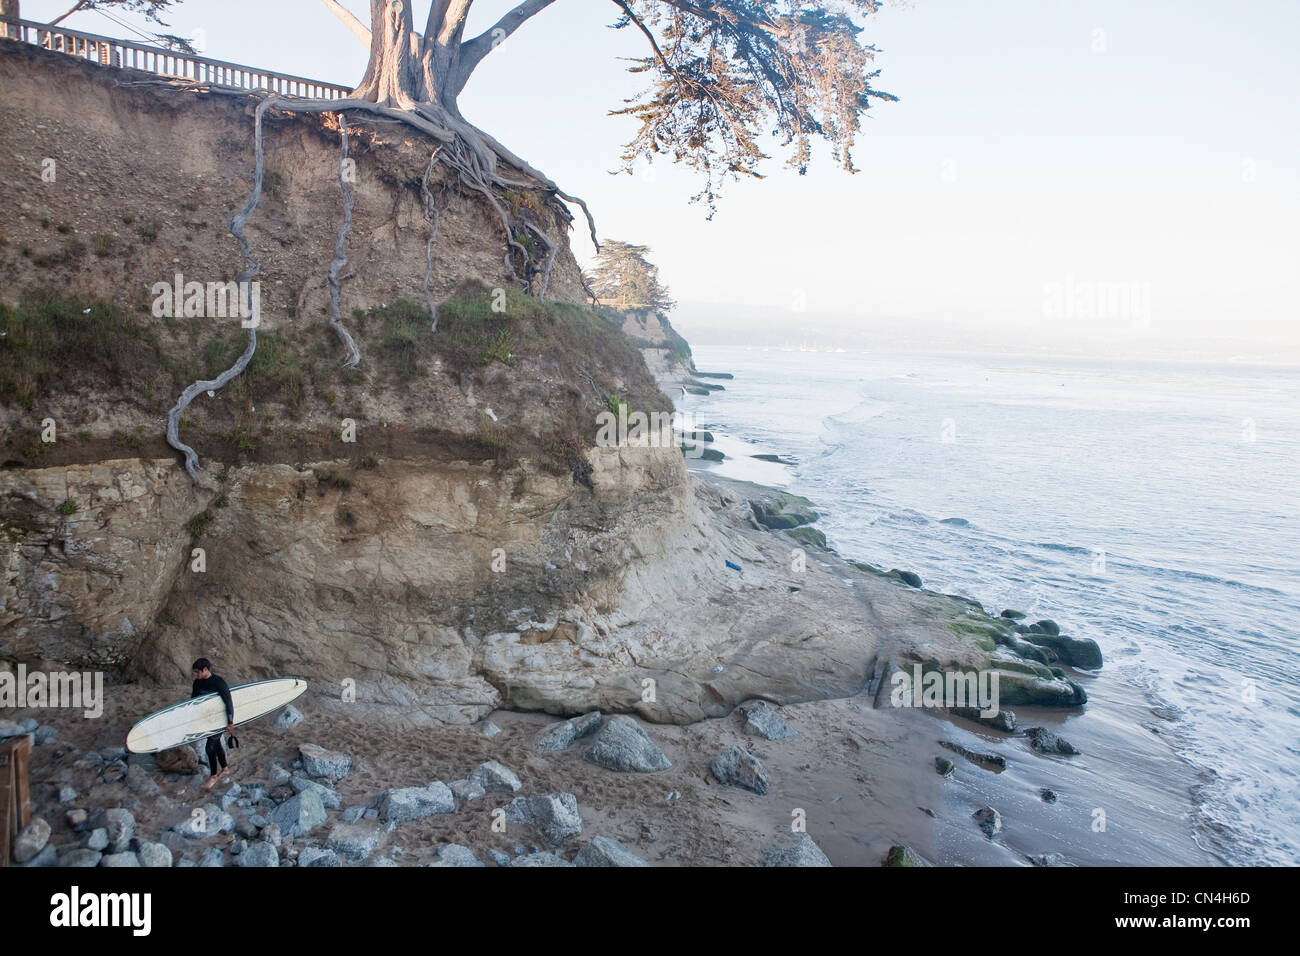 Lone surfer on rocky beach - Stock Image